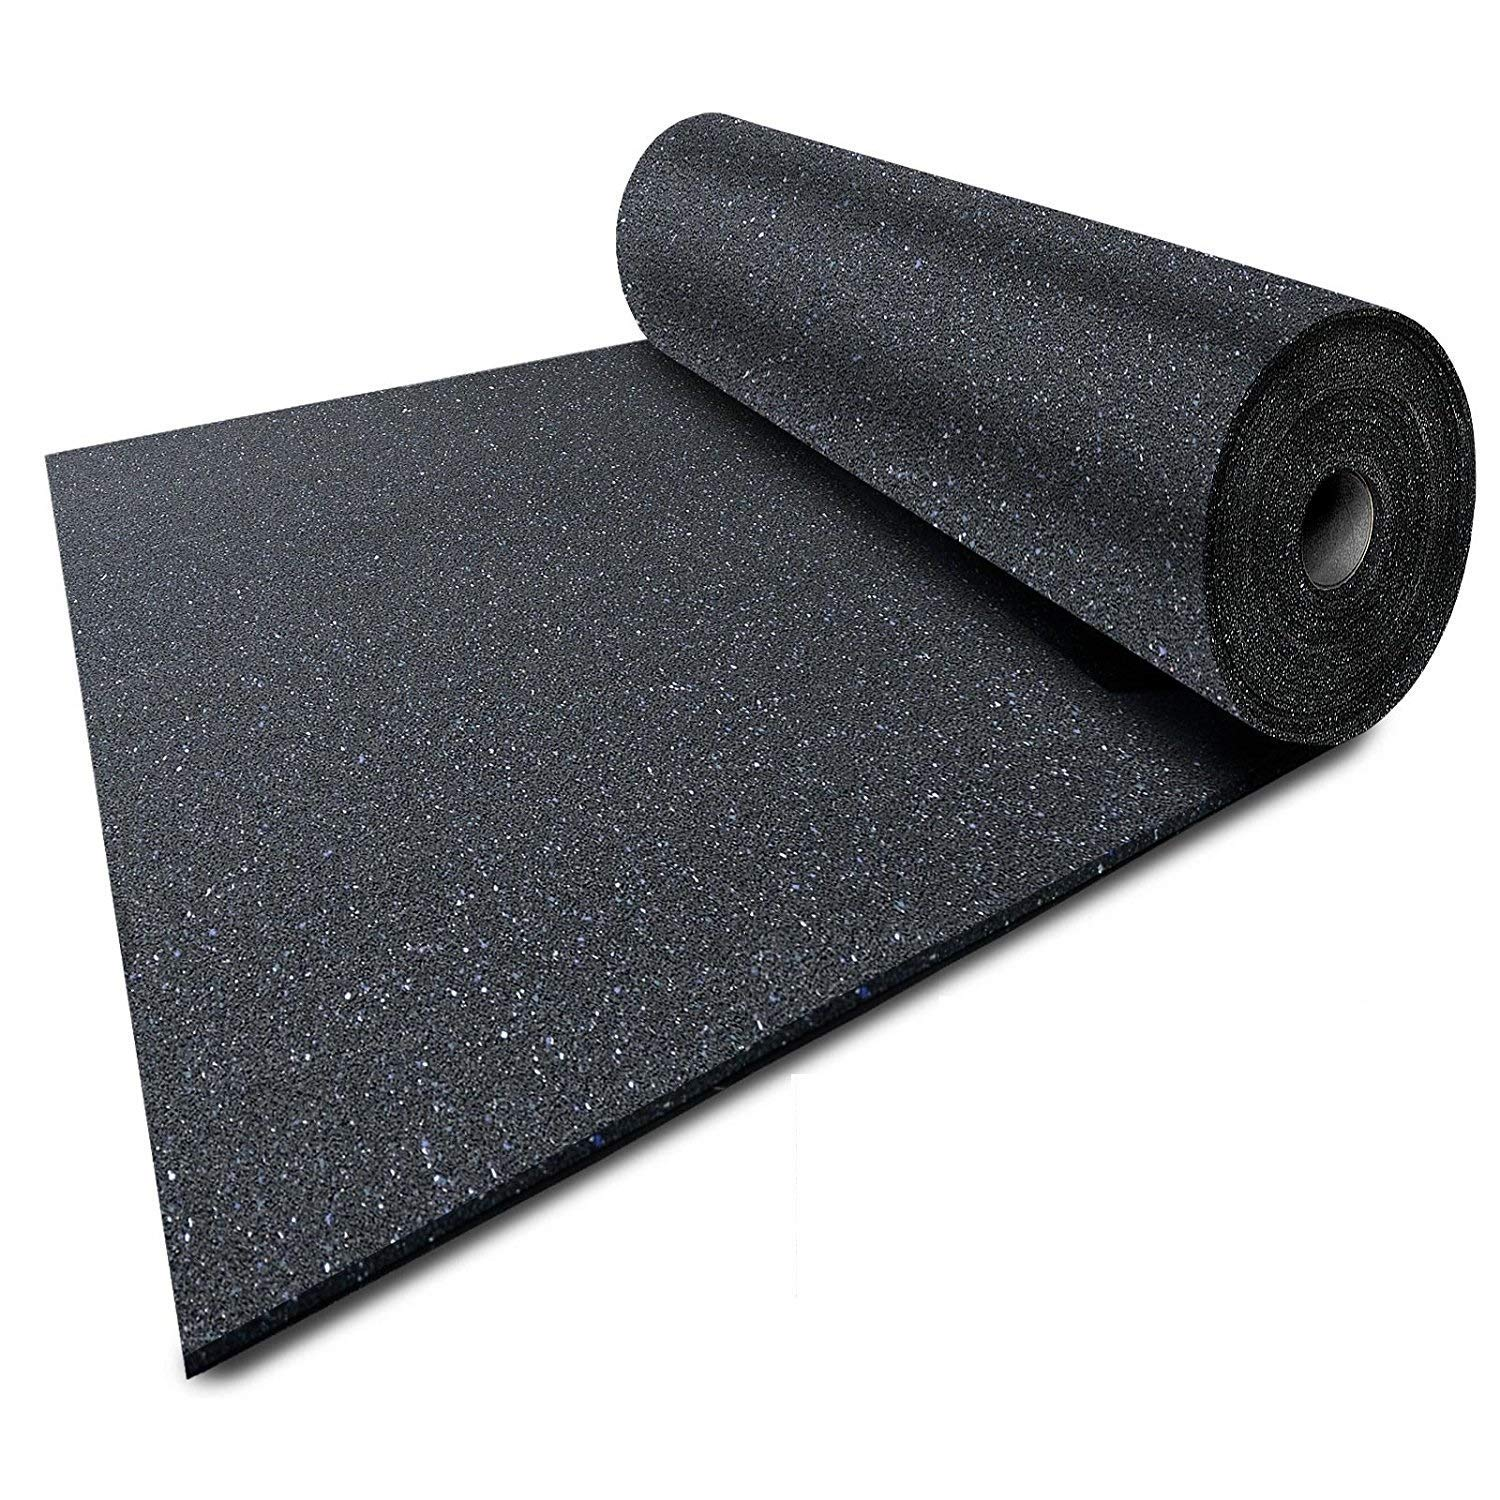 Ergocell Recycled Rubber Floor Mat – Shock Absorbent Gym Mat Flooring & Horse Stall Mat | Three Thicknesses, Multiple Sizes | 3/8'' - 2' x 1' by Ergocell (Image #3)